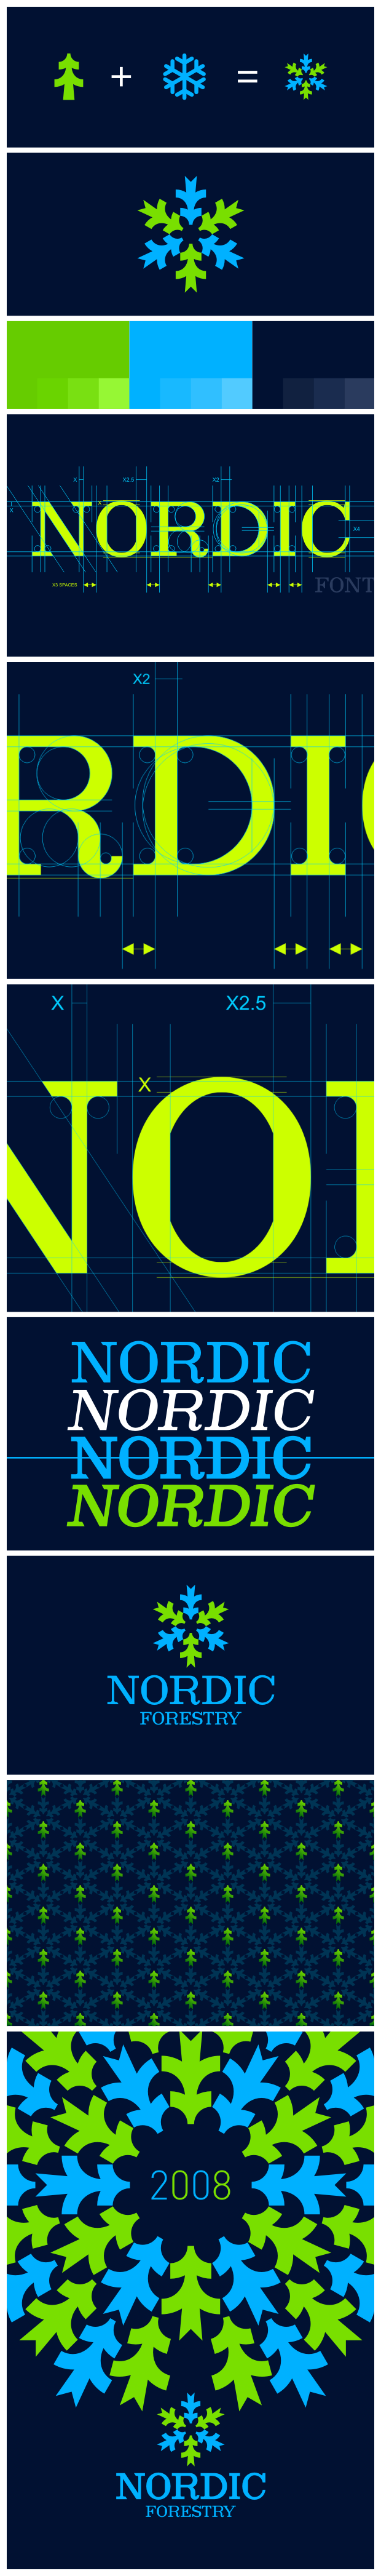 Nordic by russoturisto